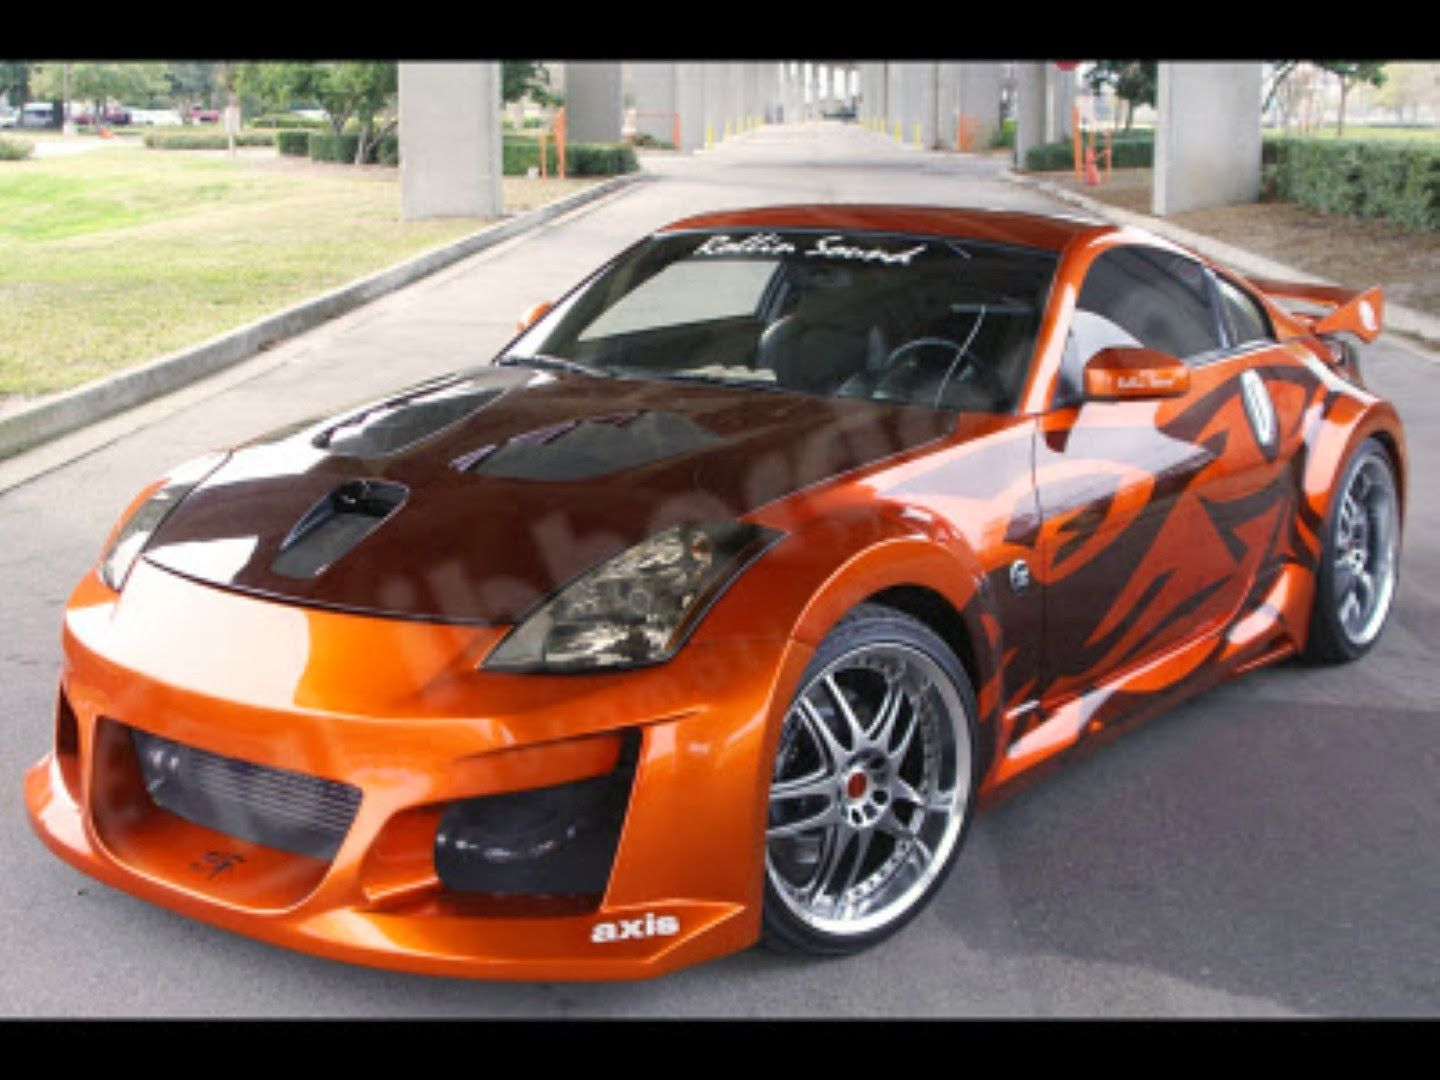 Httpcoolcarswallpapersforspot cool fast cars httpcoolcarswallpapersforspot cool fast cars wallpapers voltagebd Image collections